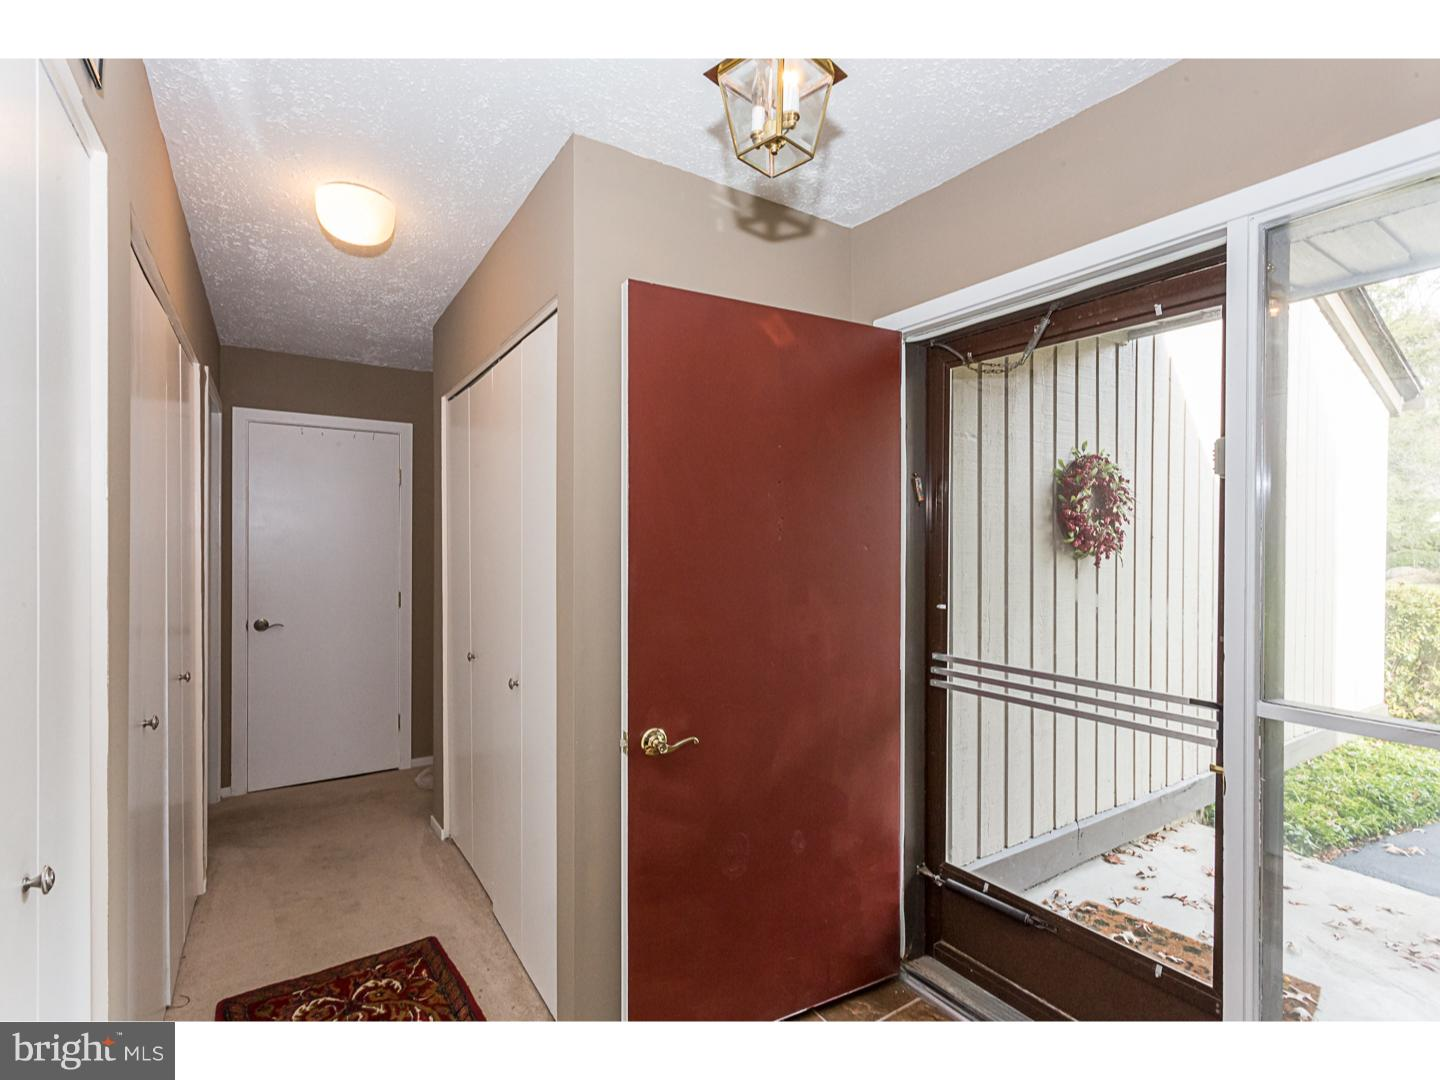 185 Chandler Drive West Chester , PA 19380